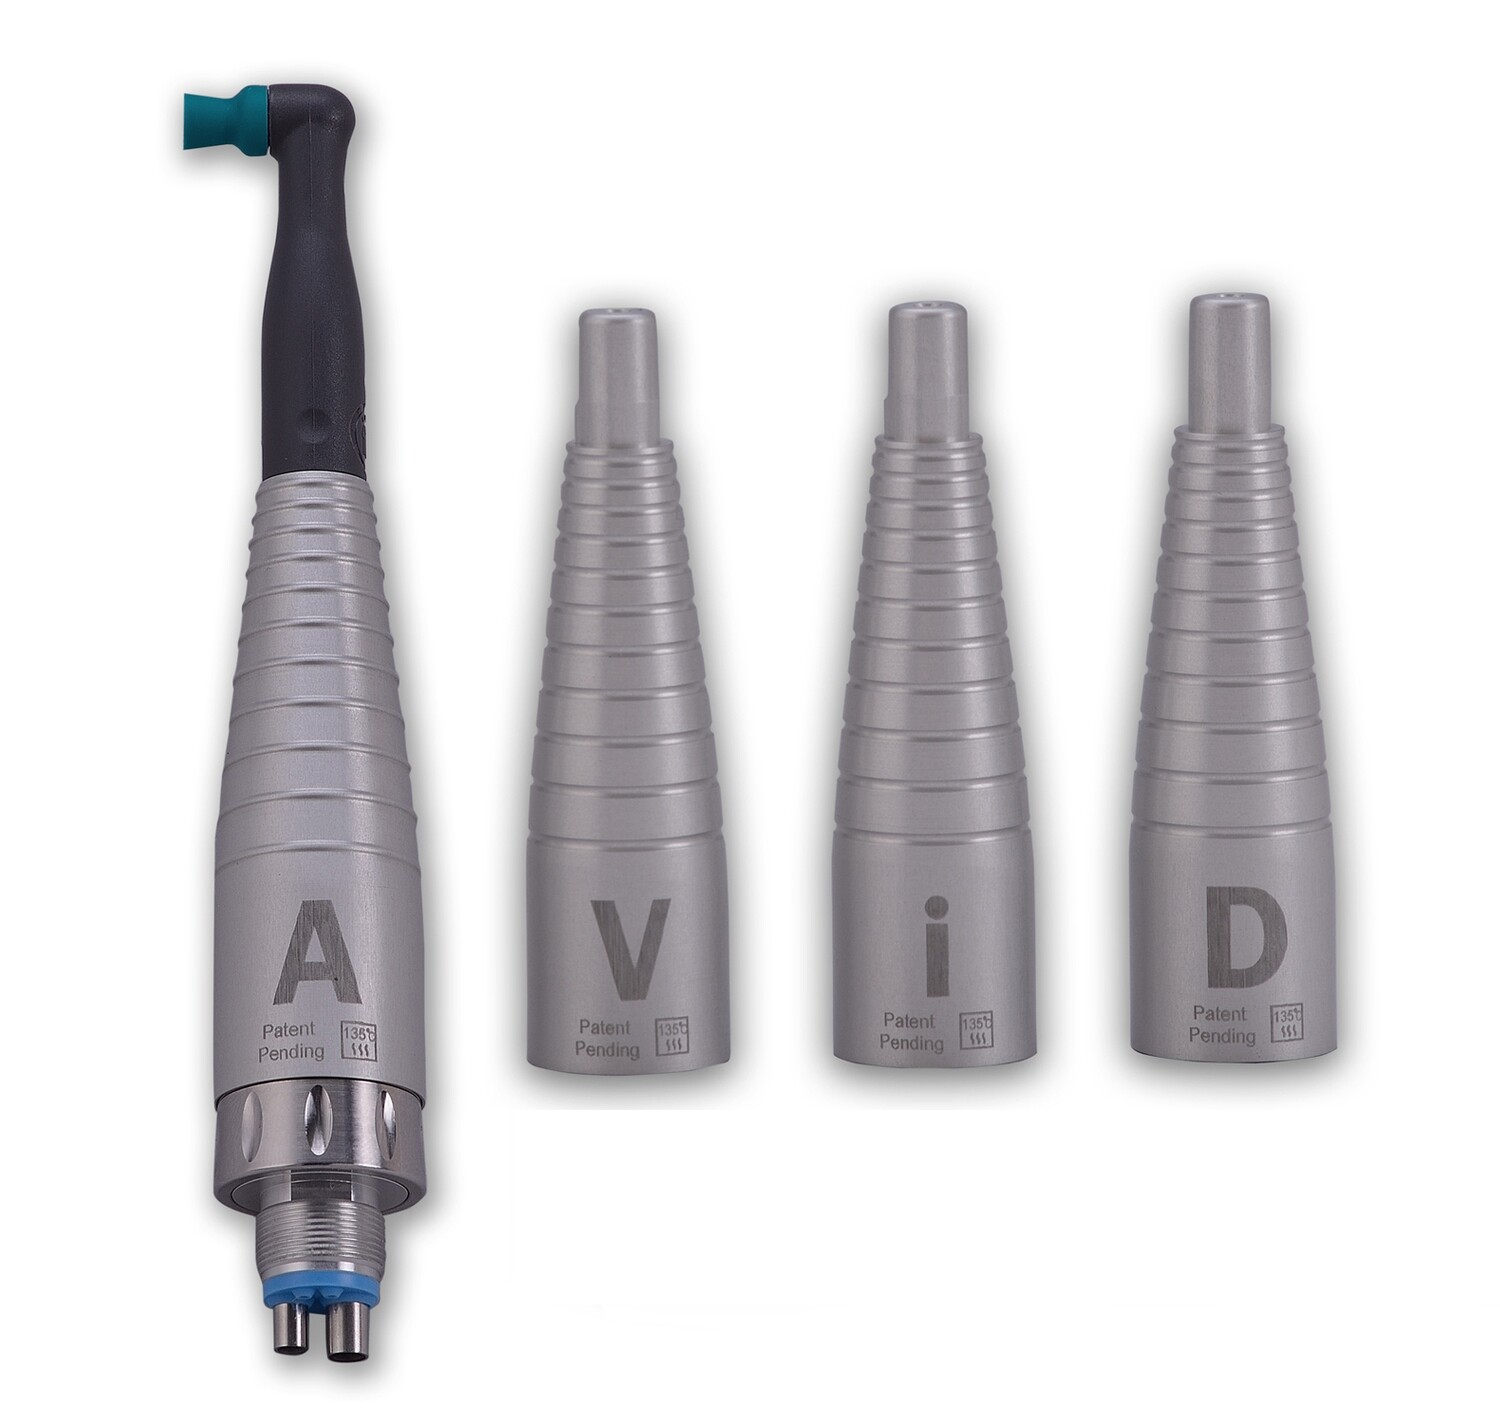 Avid Hygiene Handpiece Bronze Bundle (Save $356) 30% Discount